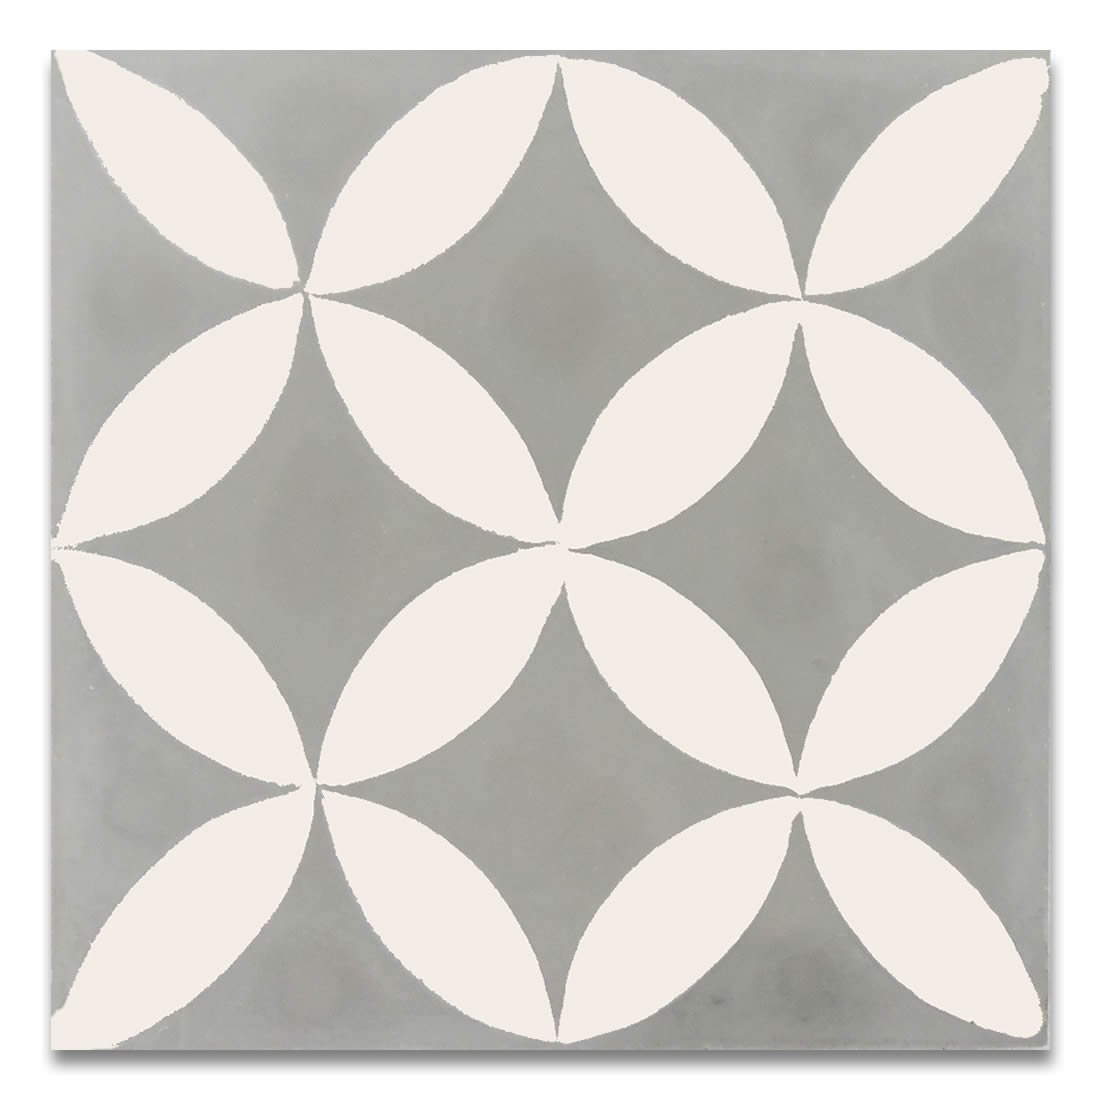 Moroccan Mosaic & Tile House CTP07-10 Amlo 8''x8'' Handmade Cement Tile in Whilte and Gray (Pack of 12), GrayWhite